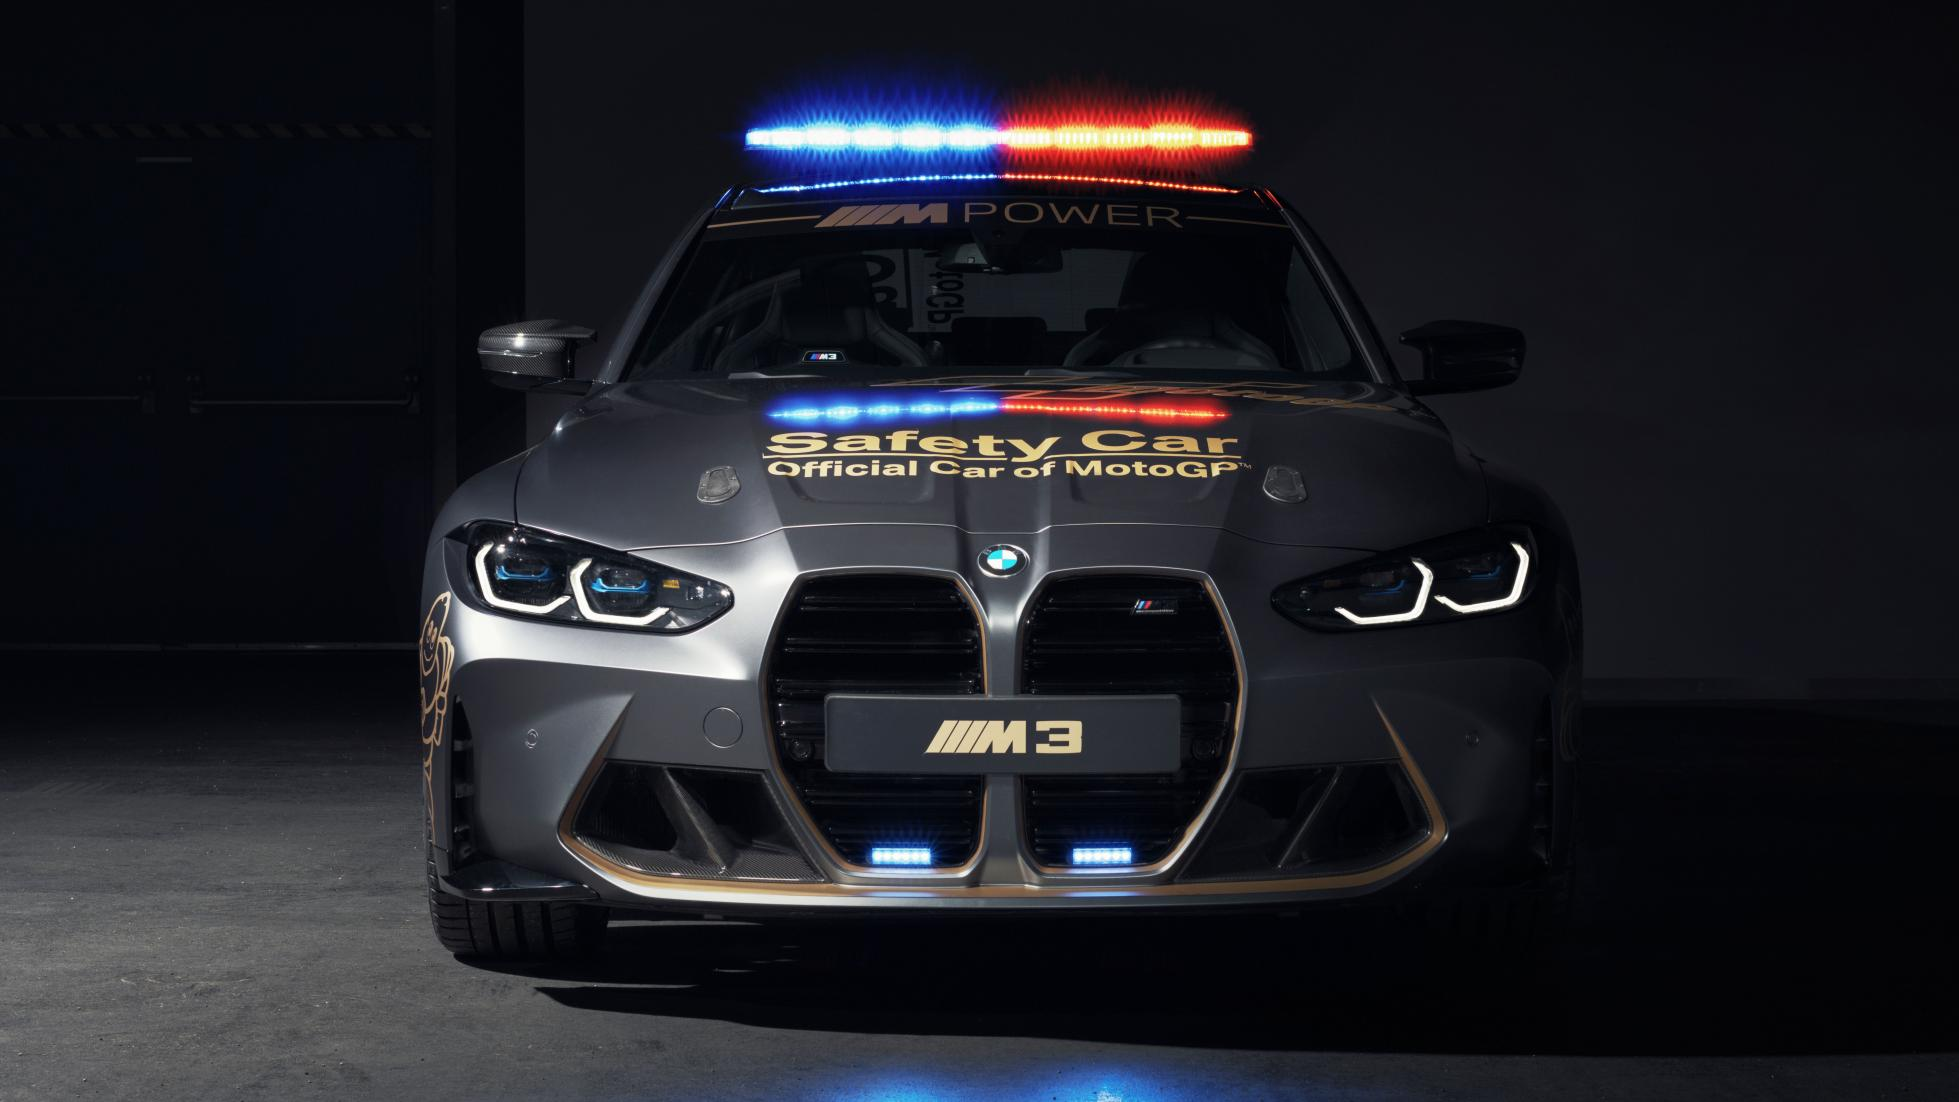 The BMW M3 as a MotoGP safety car, front view